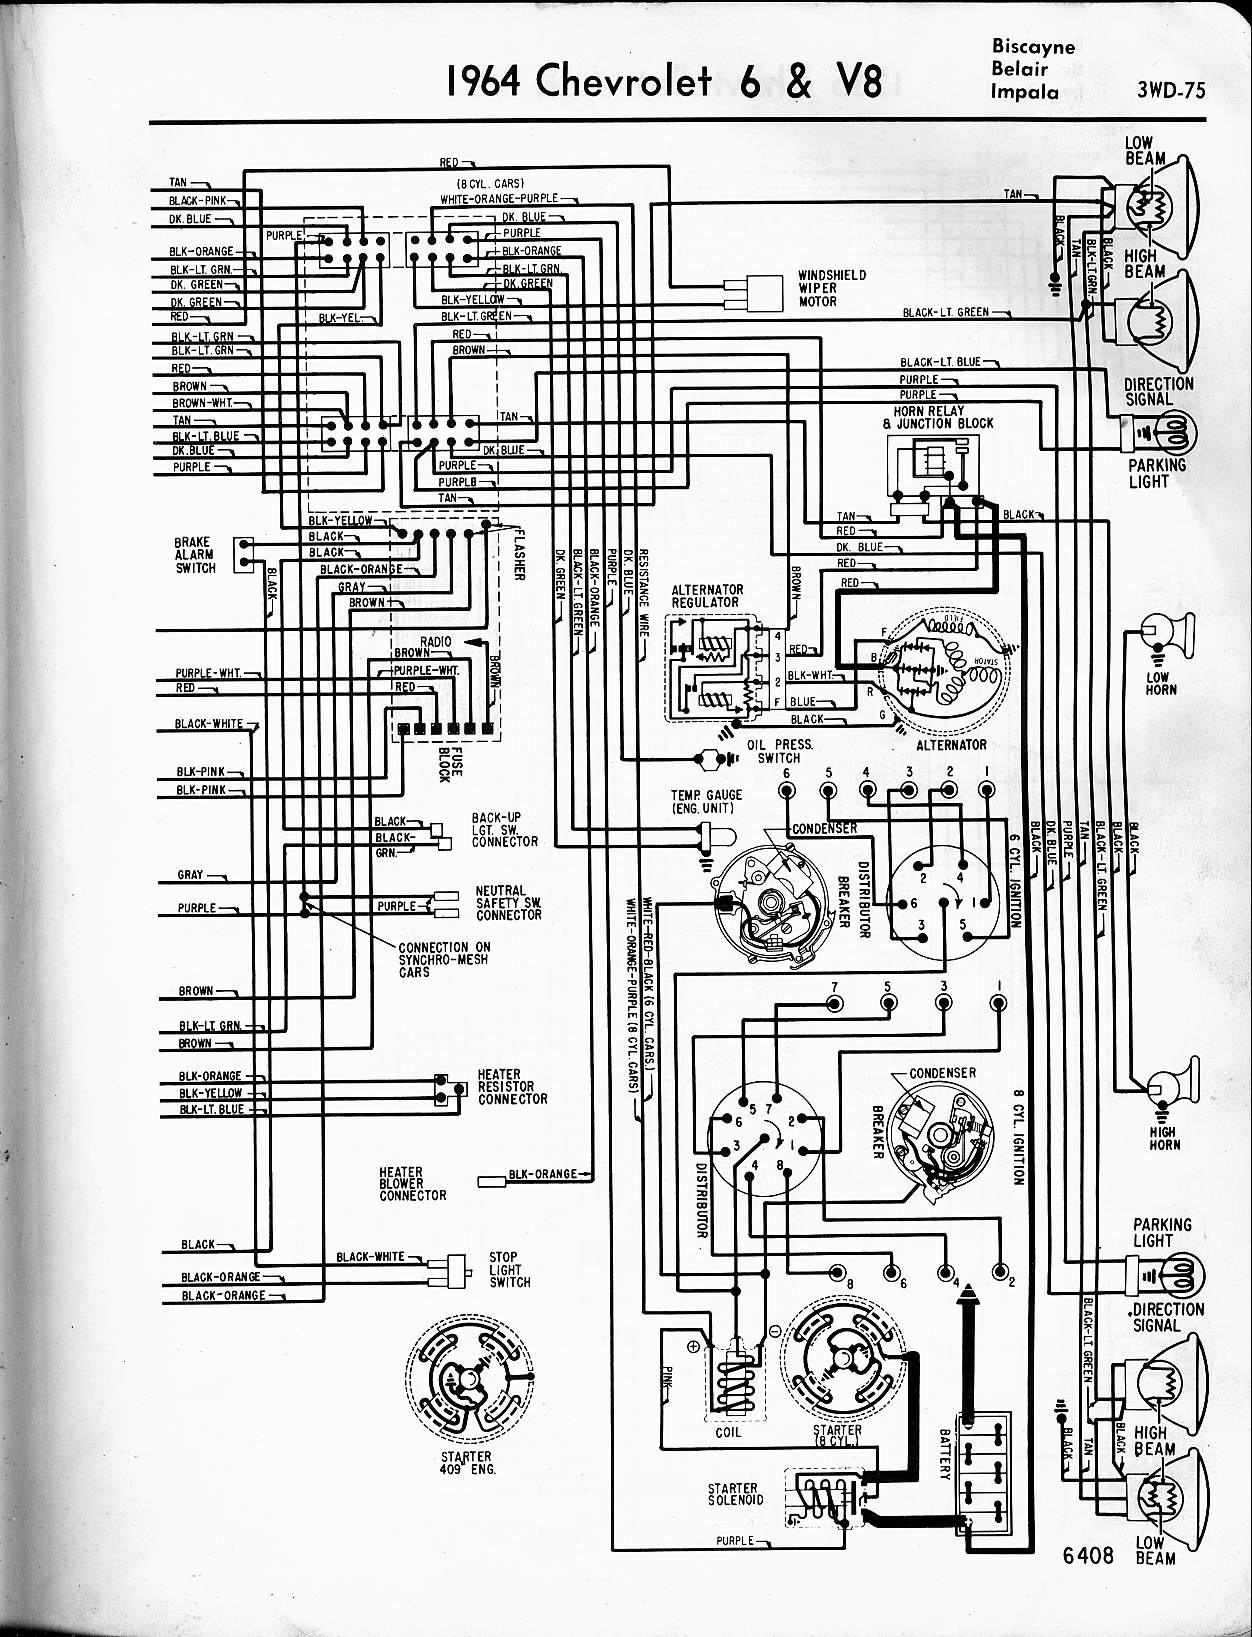 57 65 Chevy Wiring Diagrams Color Diagram For 1977 Triumph Spitfire 1964 6 V8 Biscayne Belair Impala